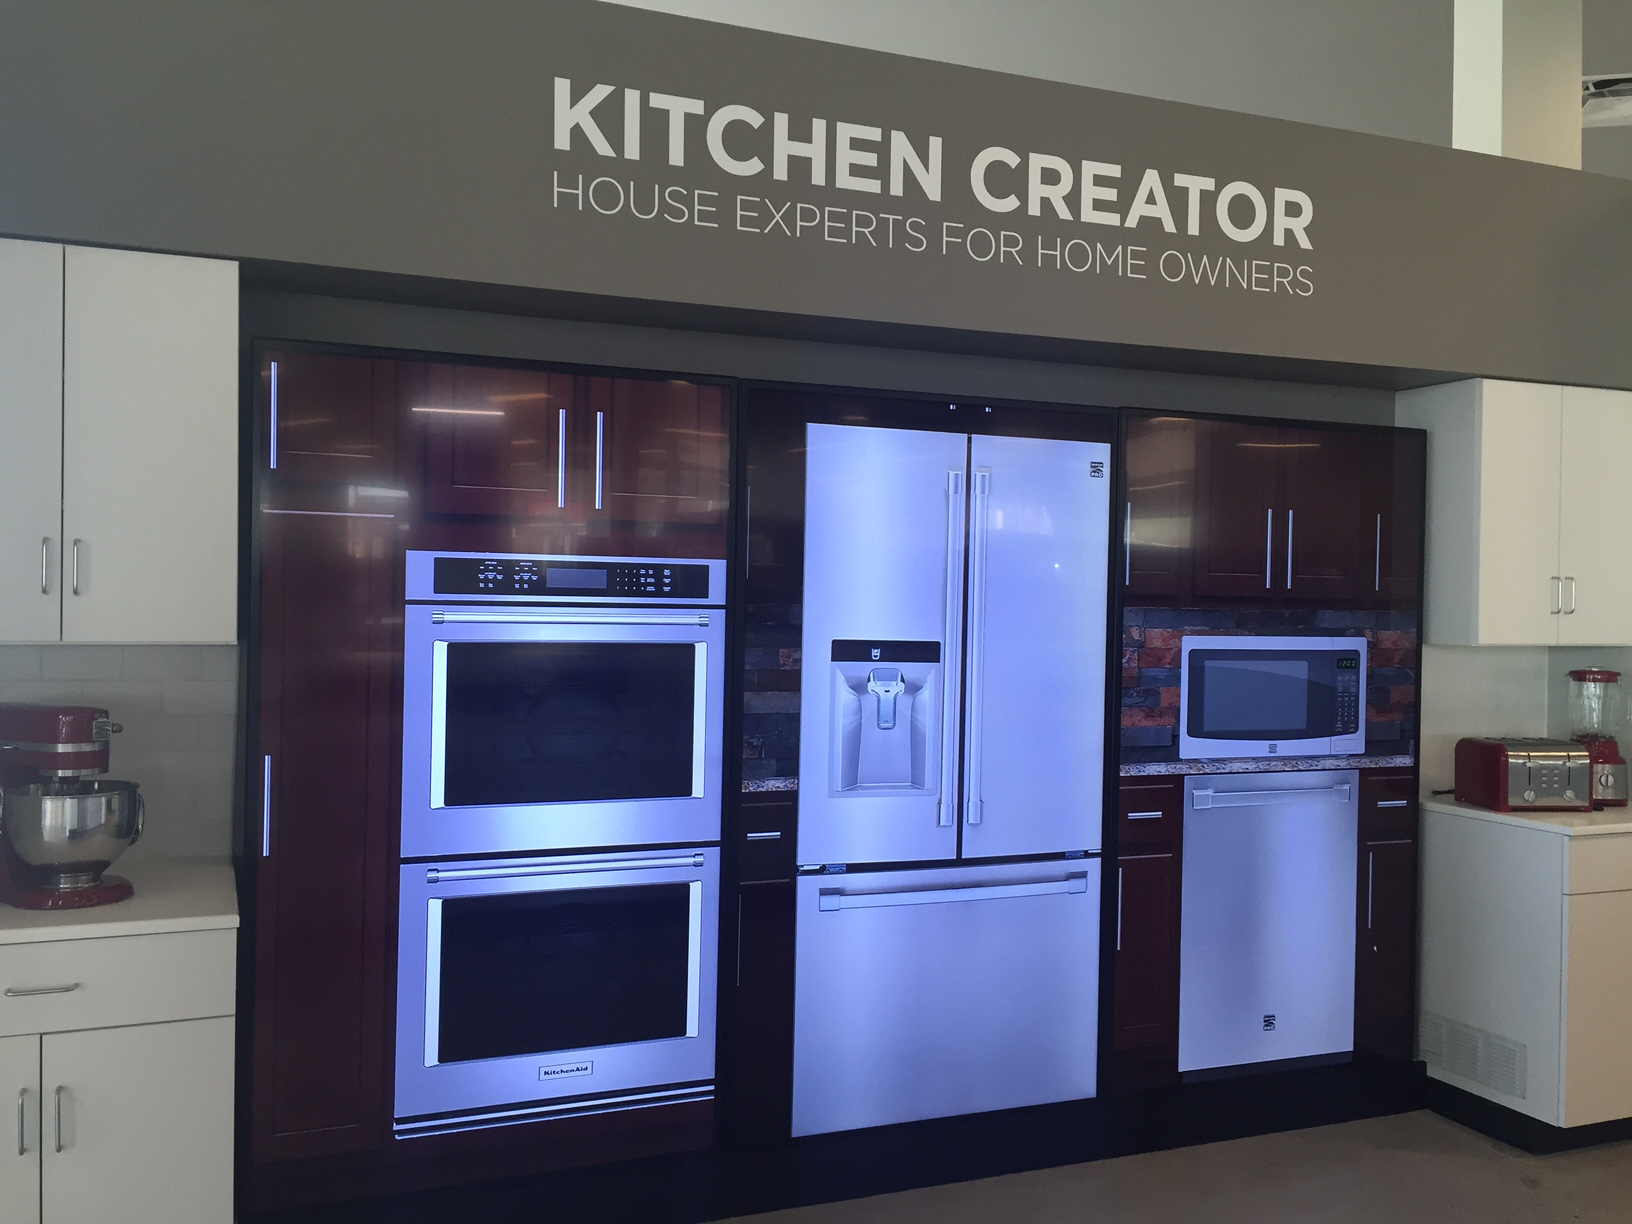 Marvelous I Skinned All The Kitchen And Appliance Elements And Worked With UXA And  Development To Implement This Life Sized Digital Display For The Sears  Appliance ...